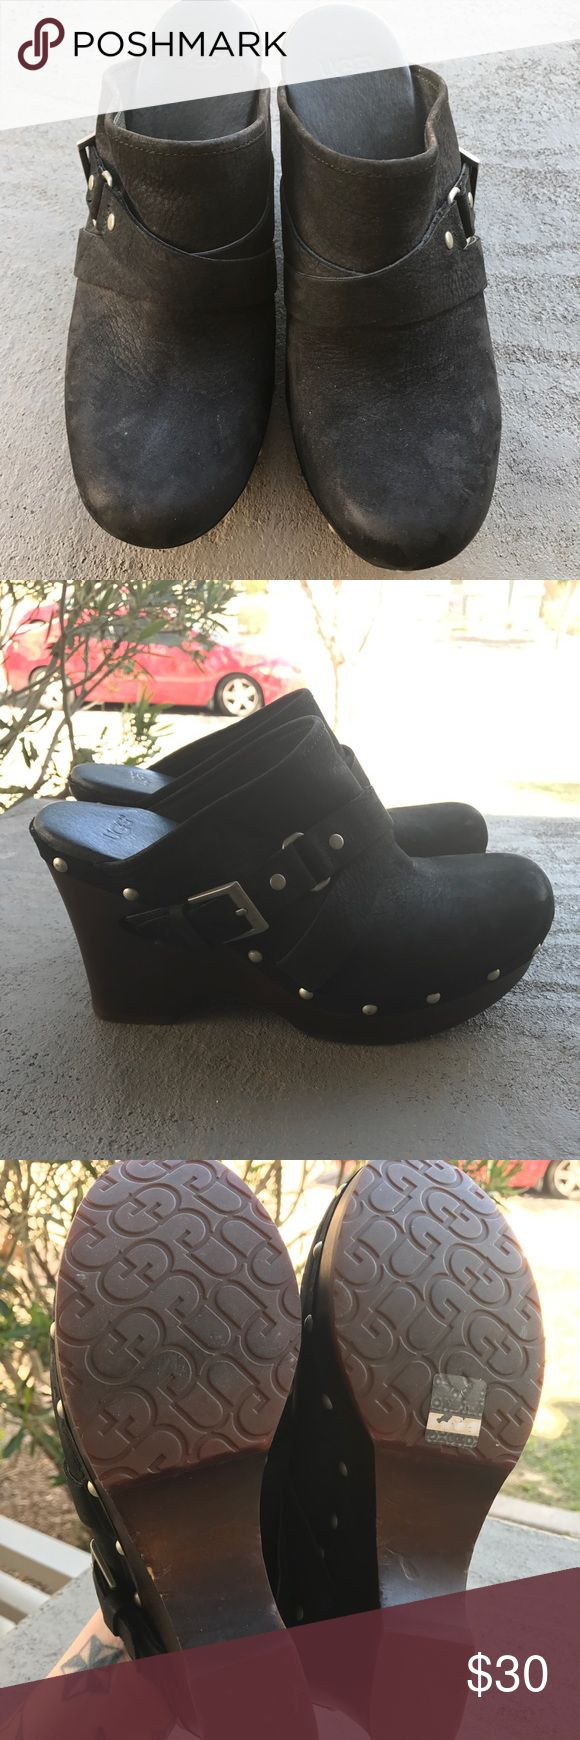 """UGG Black Leather Natalee Belted Wedge Clogs A 4-inch, sculpted bass-wood wedge stands out with slotted midsole, crisscross buckled straps, and rugged rivet accents. Nubuck leather upper criss cross belted detail, metal buckle and rivets Criss cross belted detail, metal buckle and rivets Dome shaped nailhead detail on midsole Outsole: 4"""" bass wood midsole with a 1"""" platform Slotted wood midsole construction This product contains real fur from Sheep or Lamb that has been artificially dyed and…"""